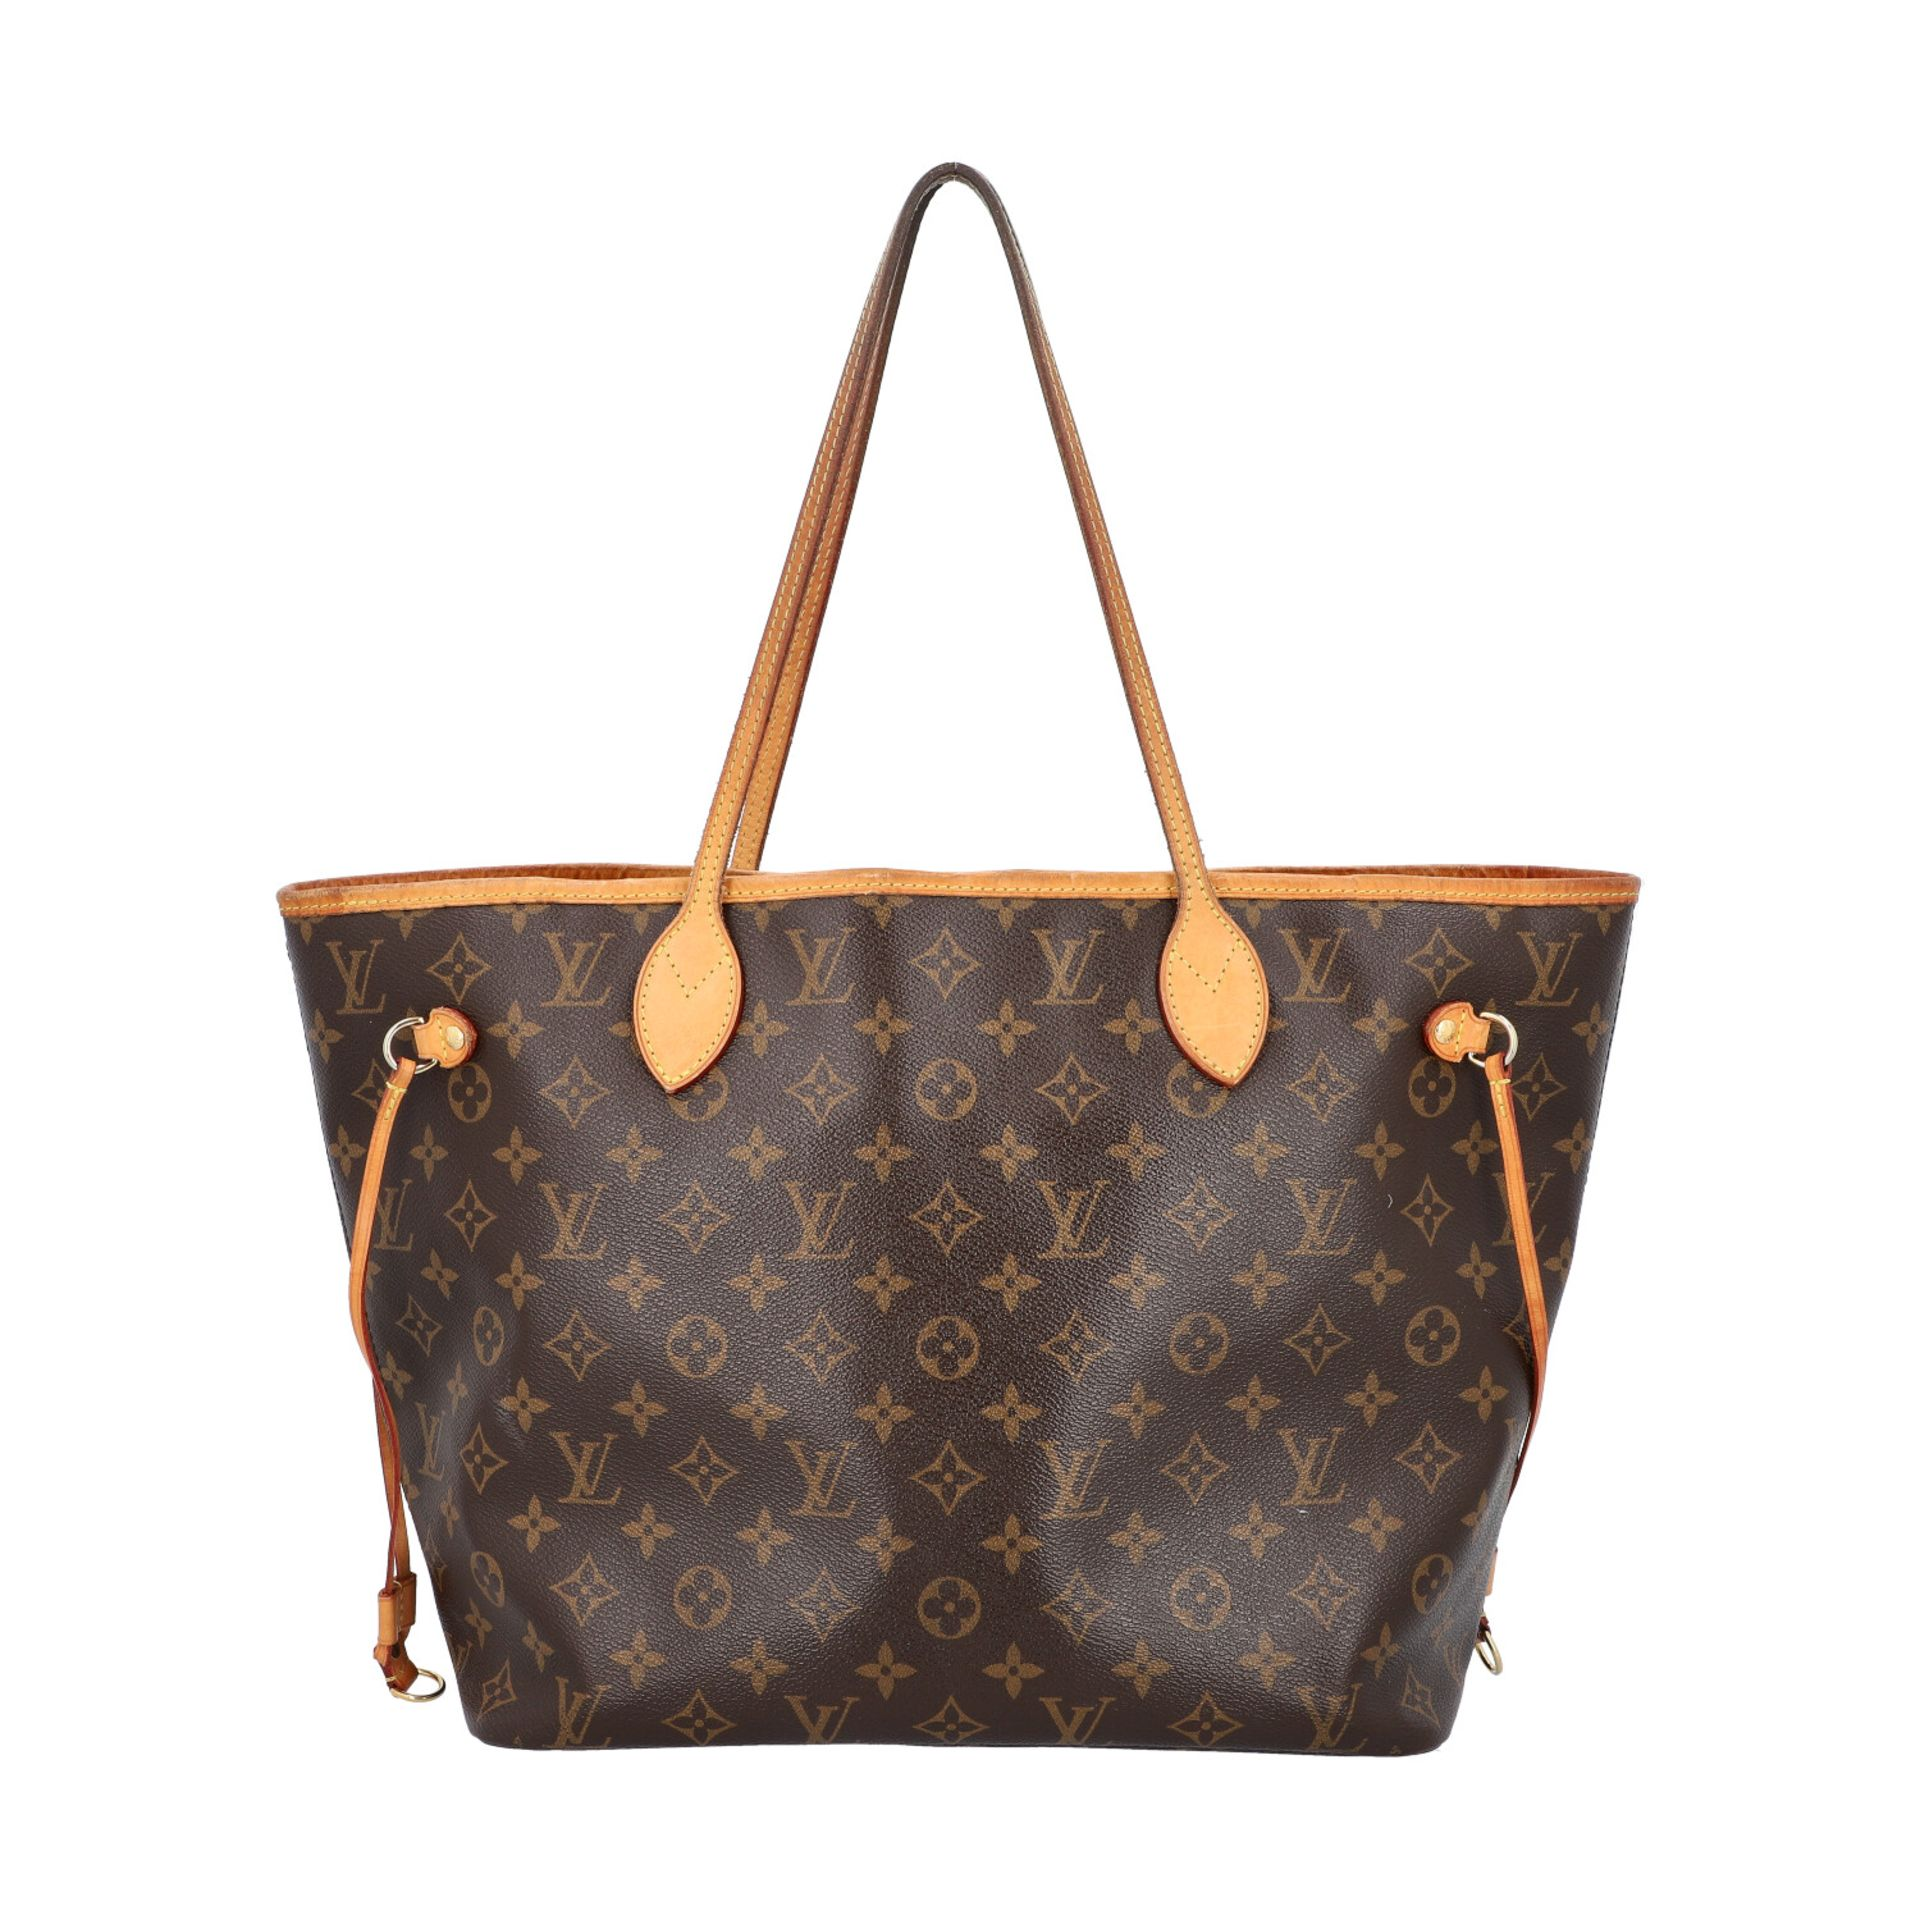 "LOUIS VUITTON Shoppertasche ""NEVERFULL MM"", Koll. 2014. Akt. NP.: 1150,-€. Monogram"